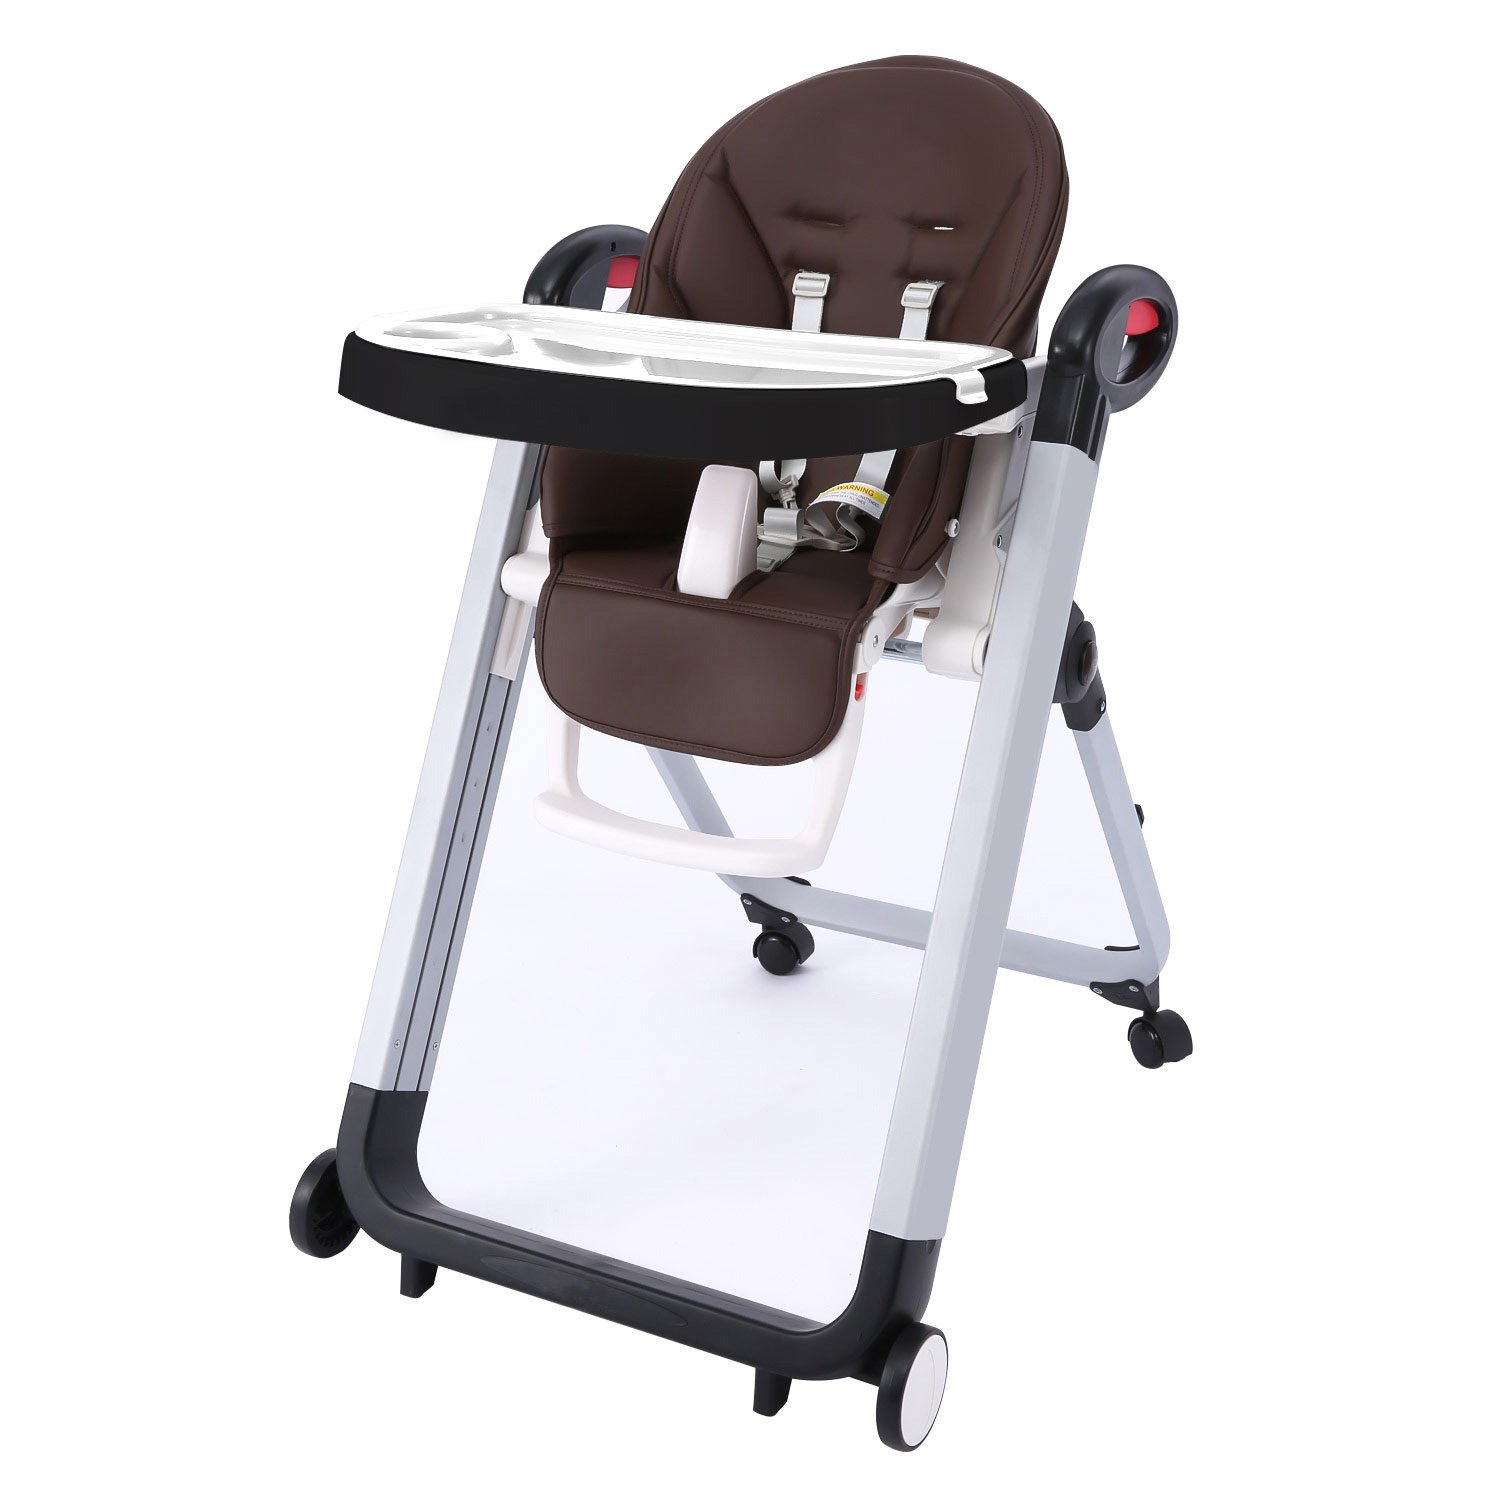 Smibie Portable Baby High Chair Multi-use Folding Infant Dining Chair,Chocolate